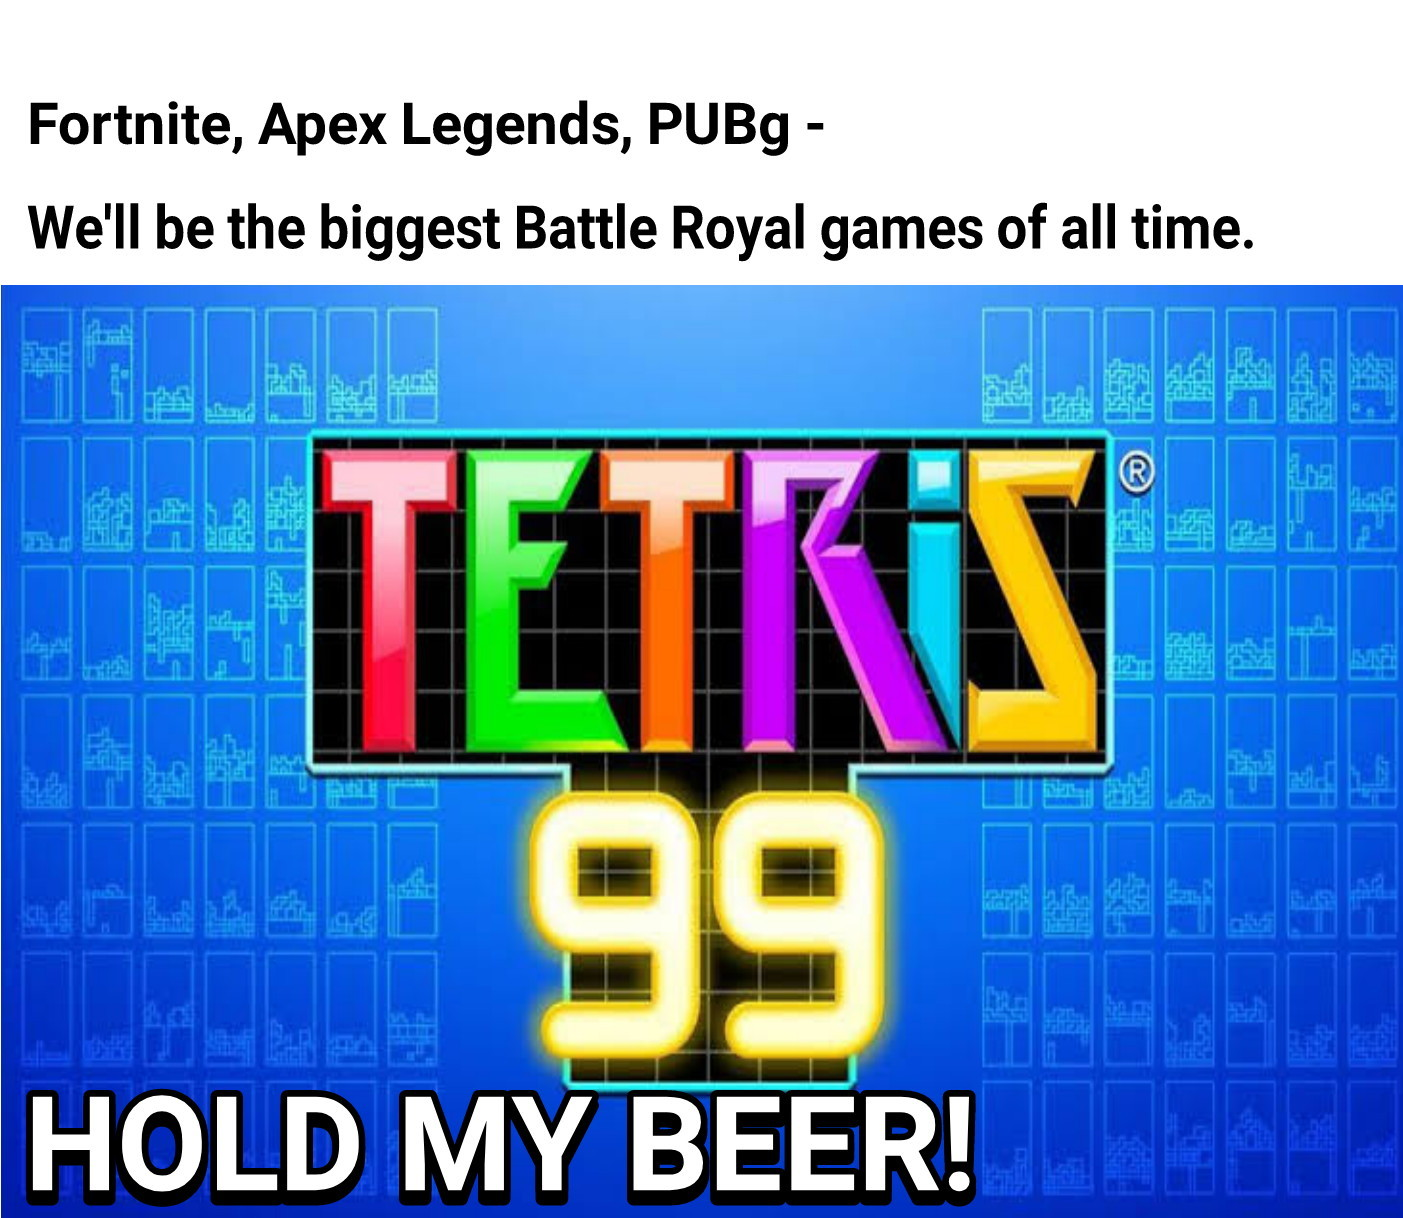 Tetris Battle Royal - meme